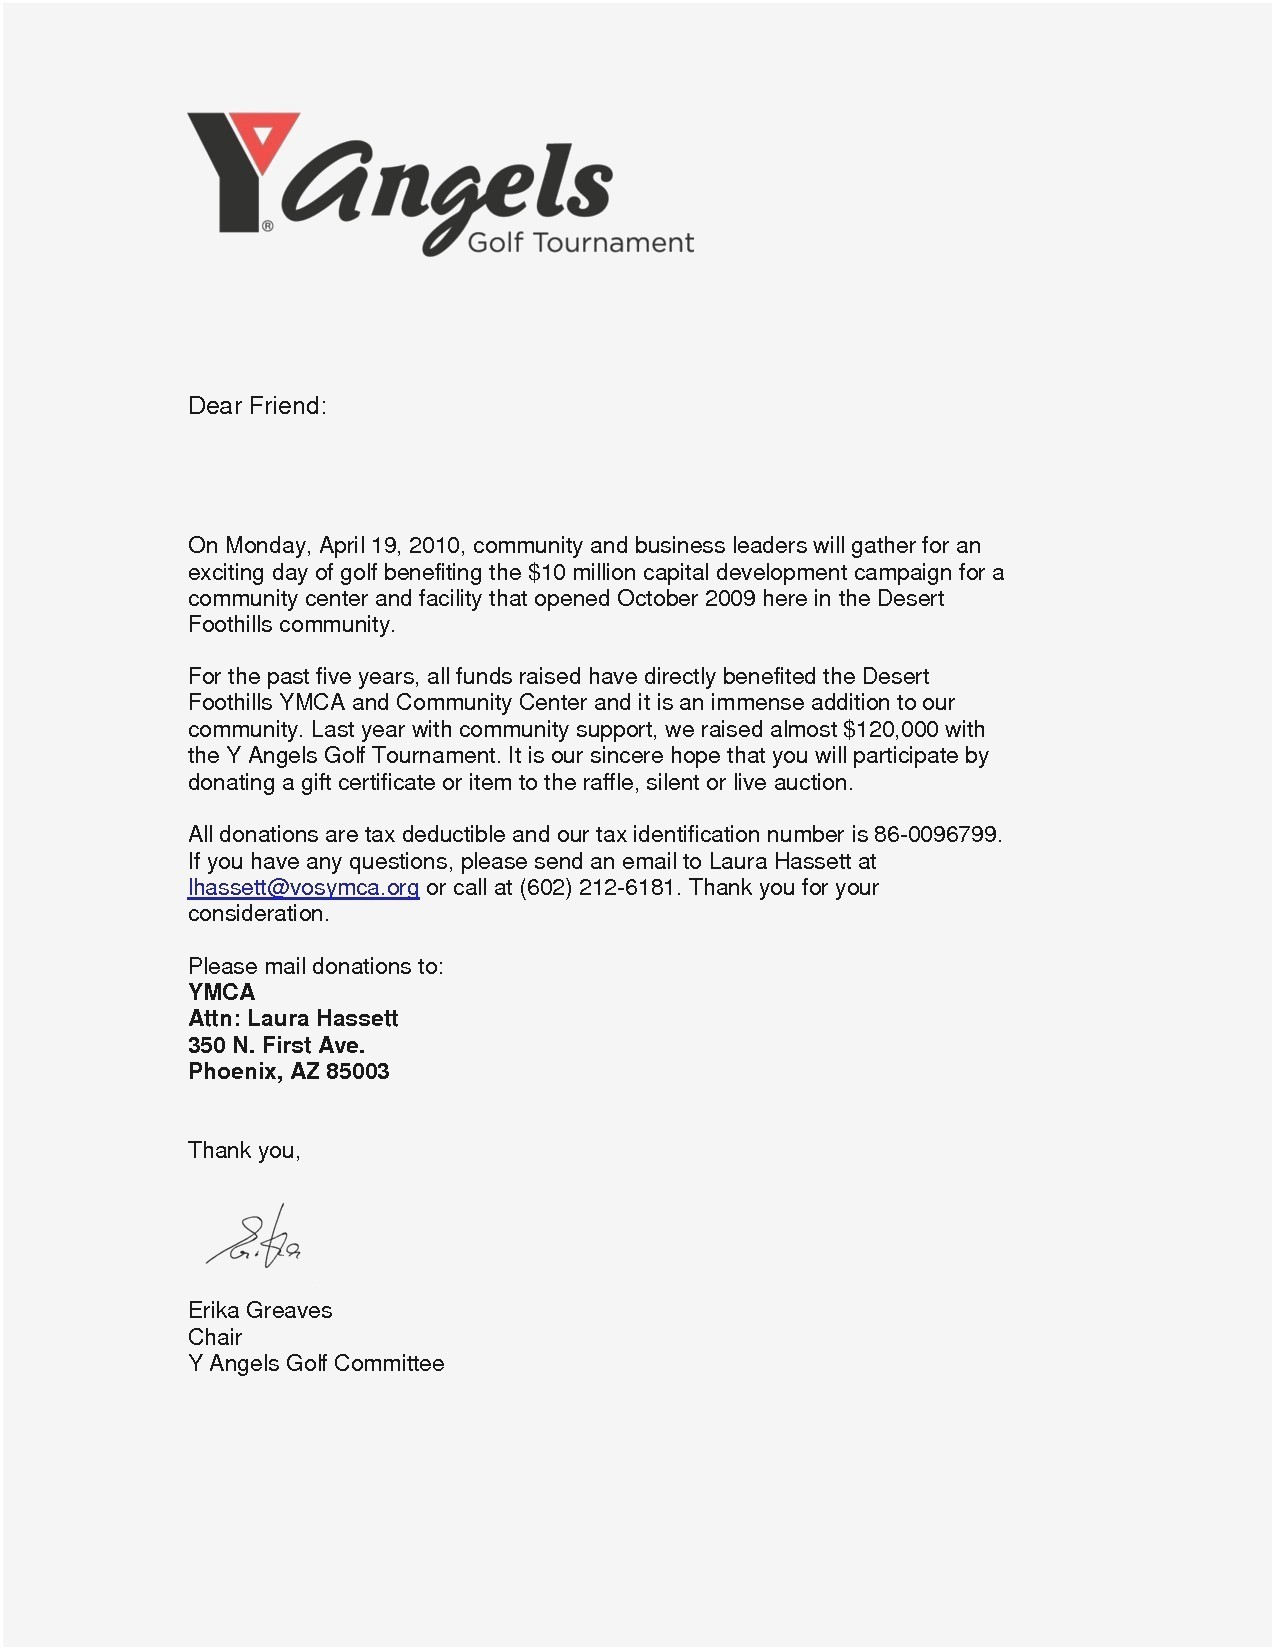 golf tournament donation letter template Collection-Business Donation Letter Template Save Donation Request Letter Template 11-h